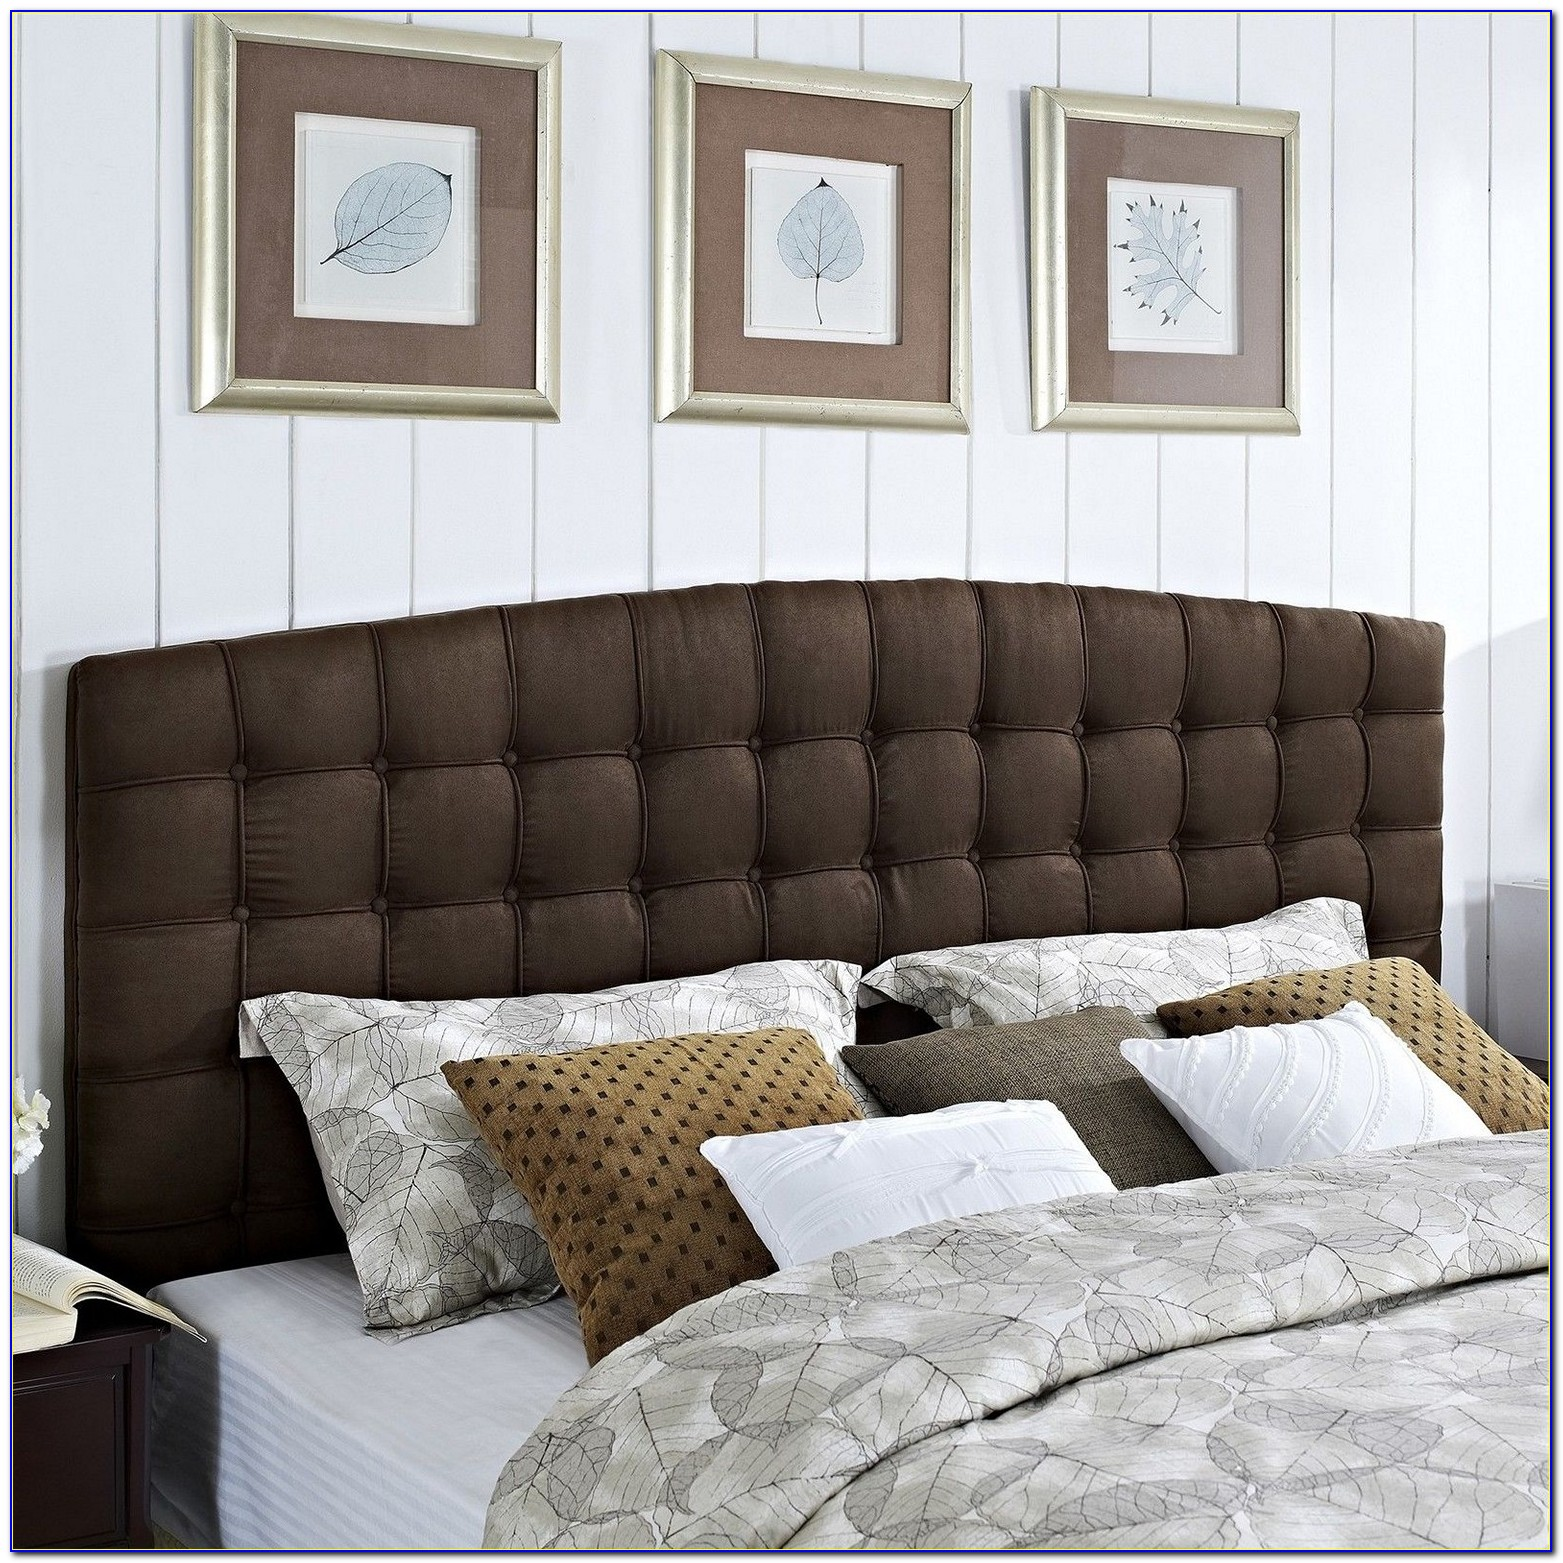 Padded King Size Headboards